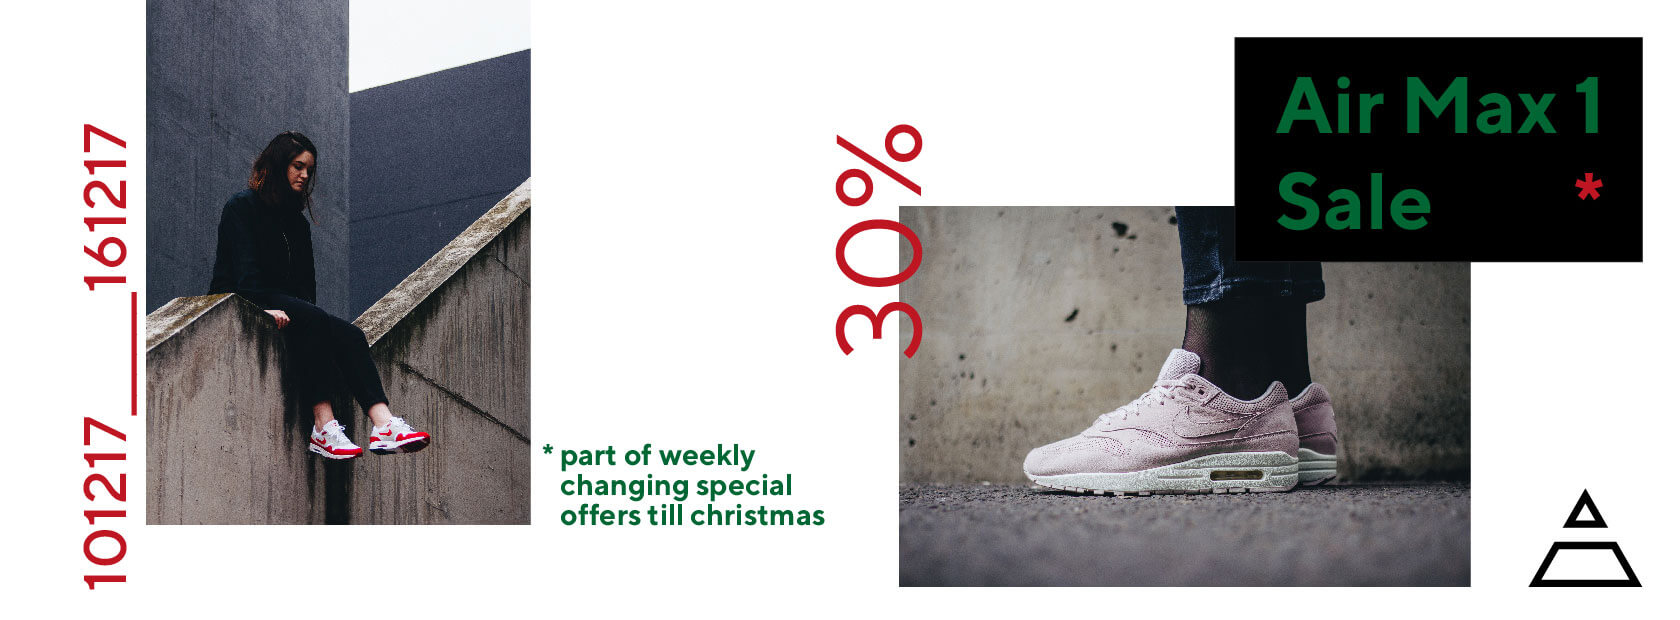 2. Advent Calendar Sales - 30% off all Air Max 1